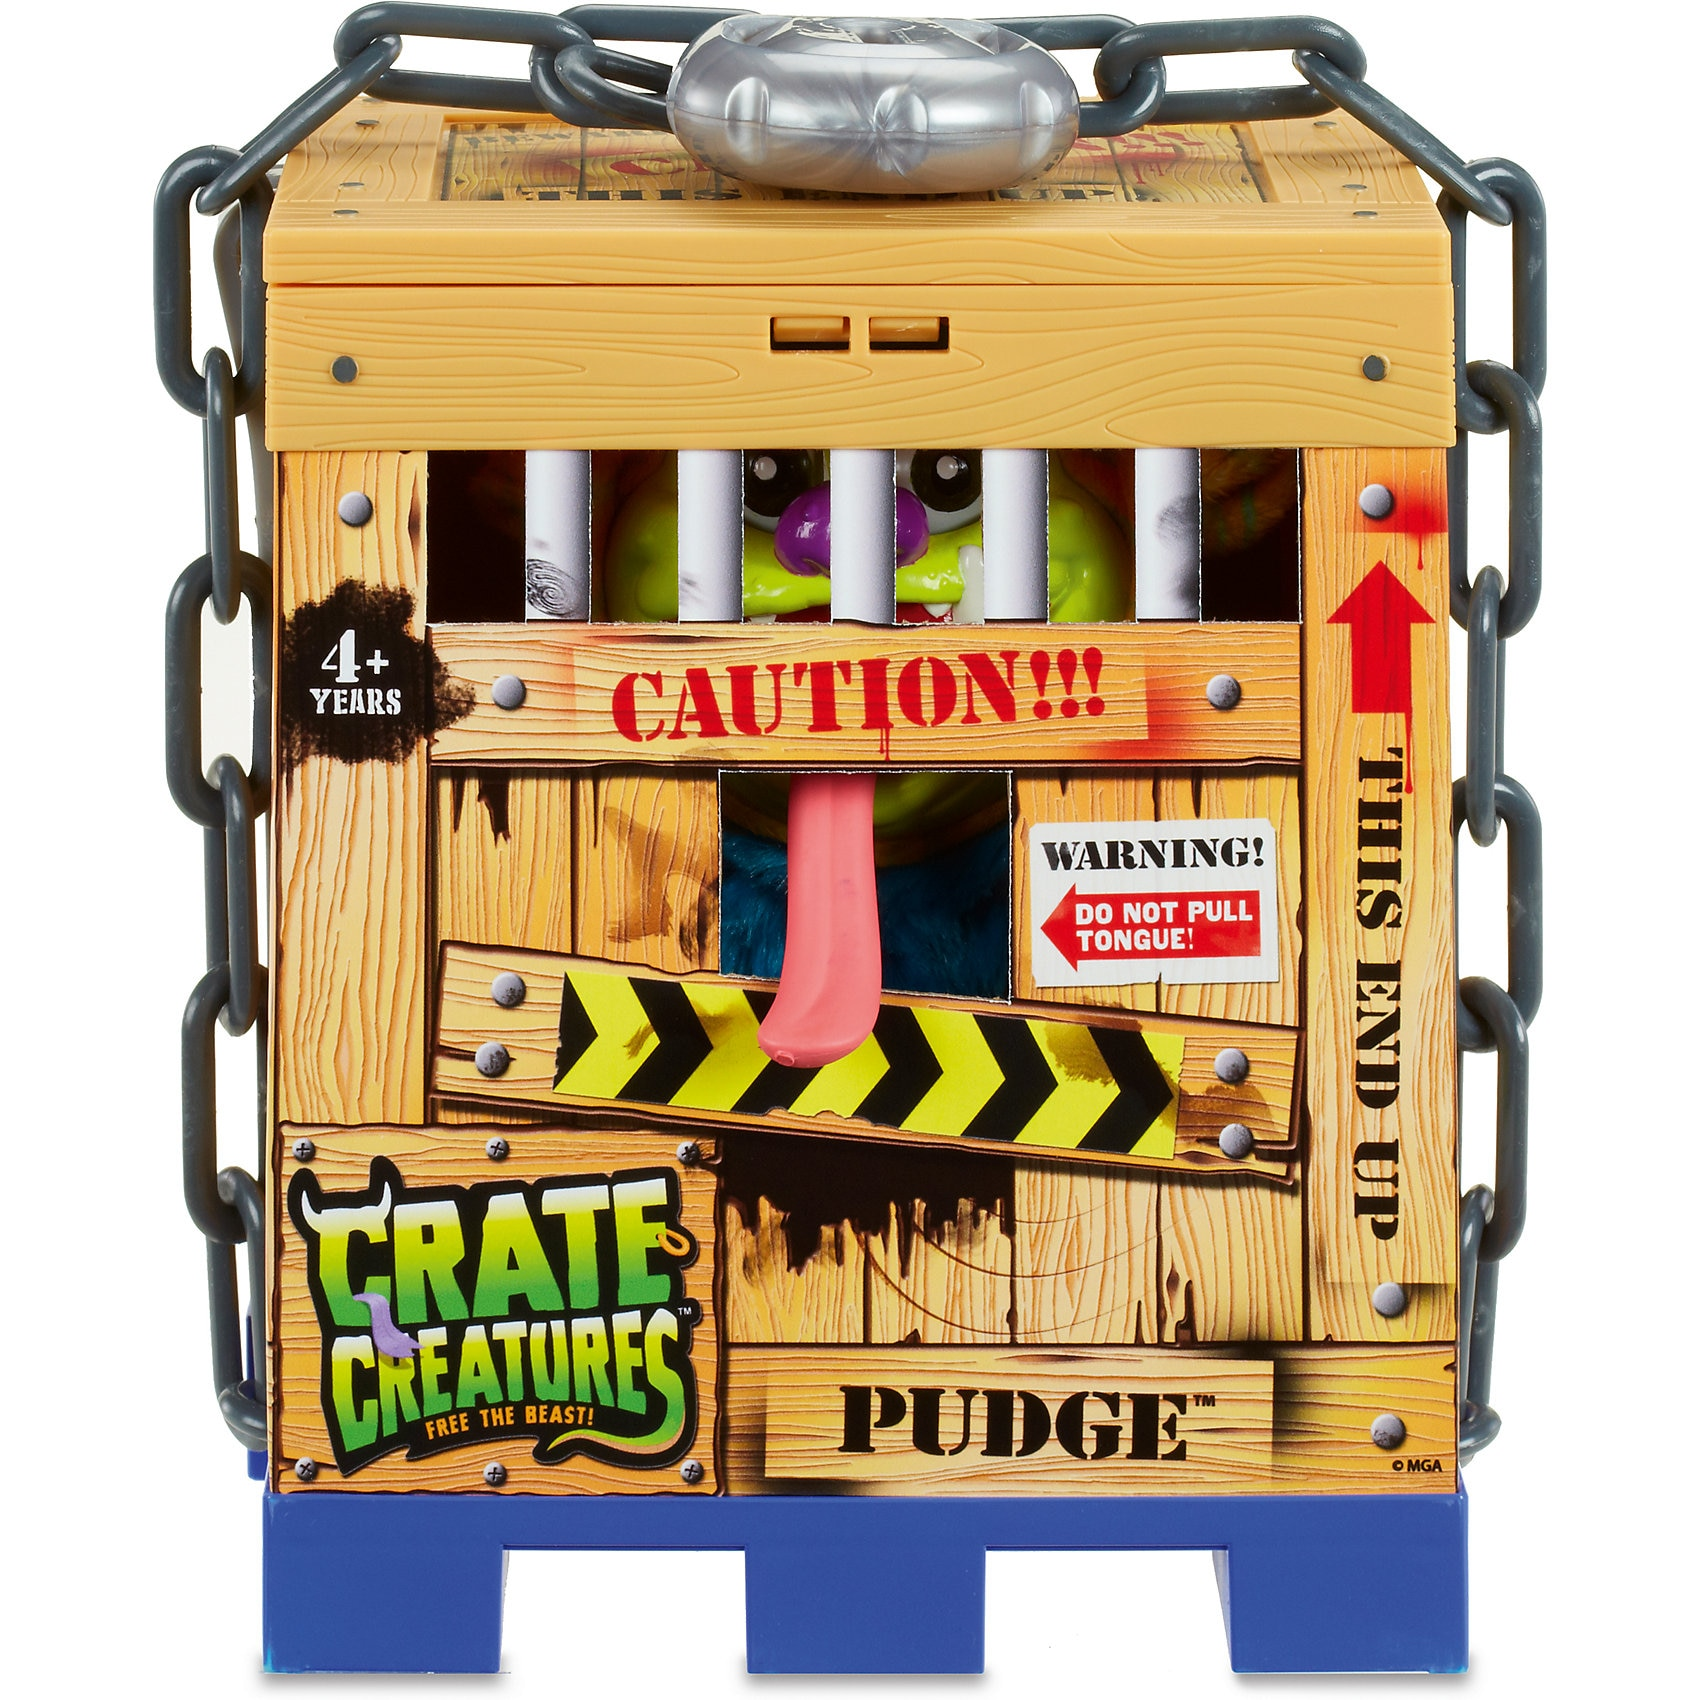 MGA Crate Creatures Surprise- Pudge